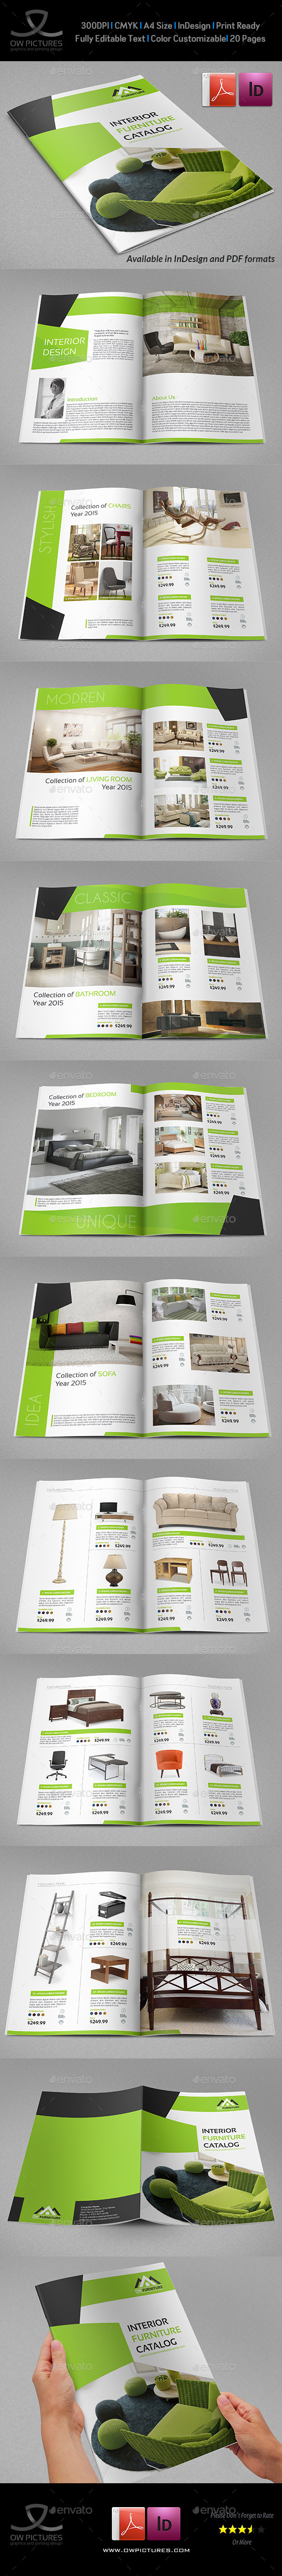 GraphicRiver Products Catalogs Brochure 20 Pages 11127077